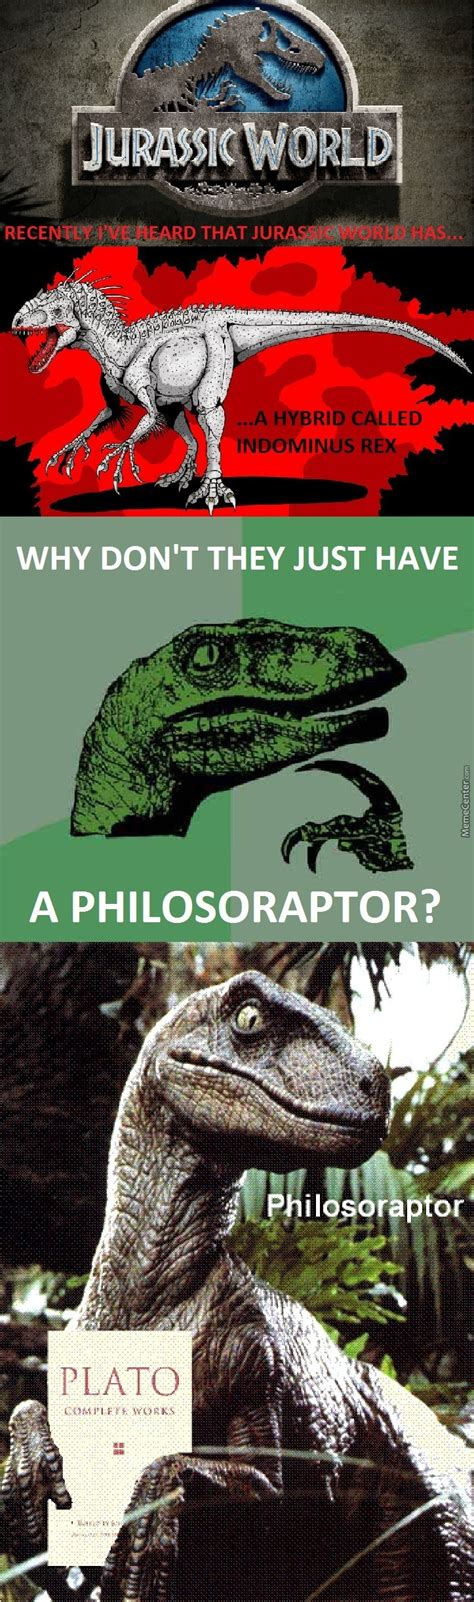 Jurassic Memes - philosoraptor in jurassic world by winternet meme center